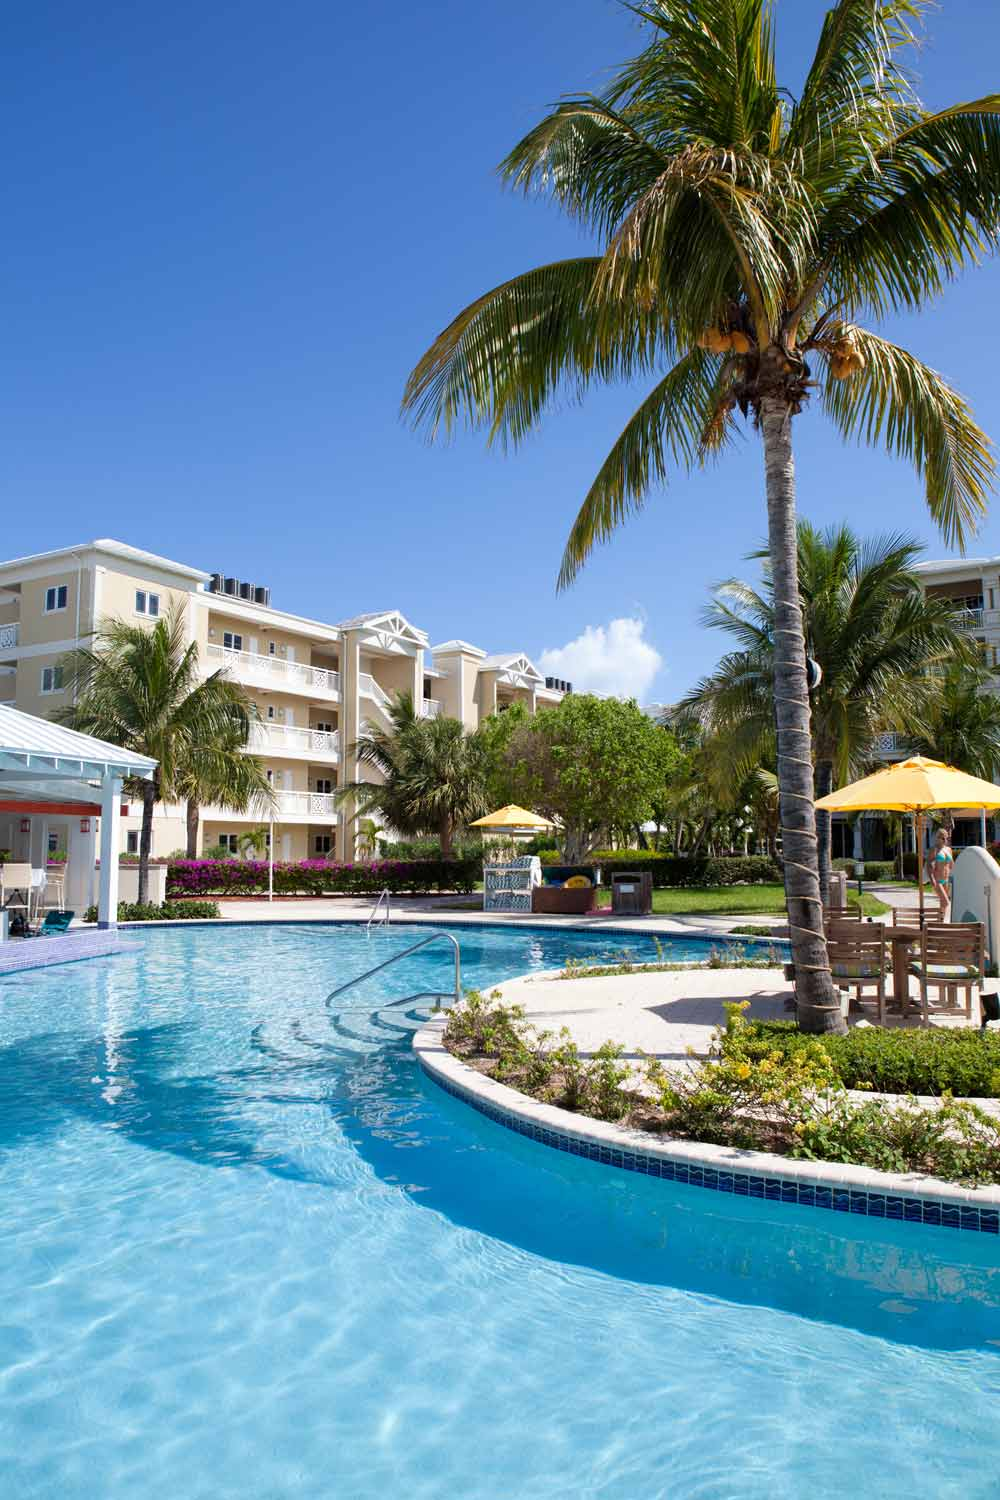 The Alexandra Resort Turks and Caicos